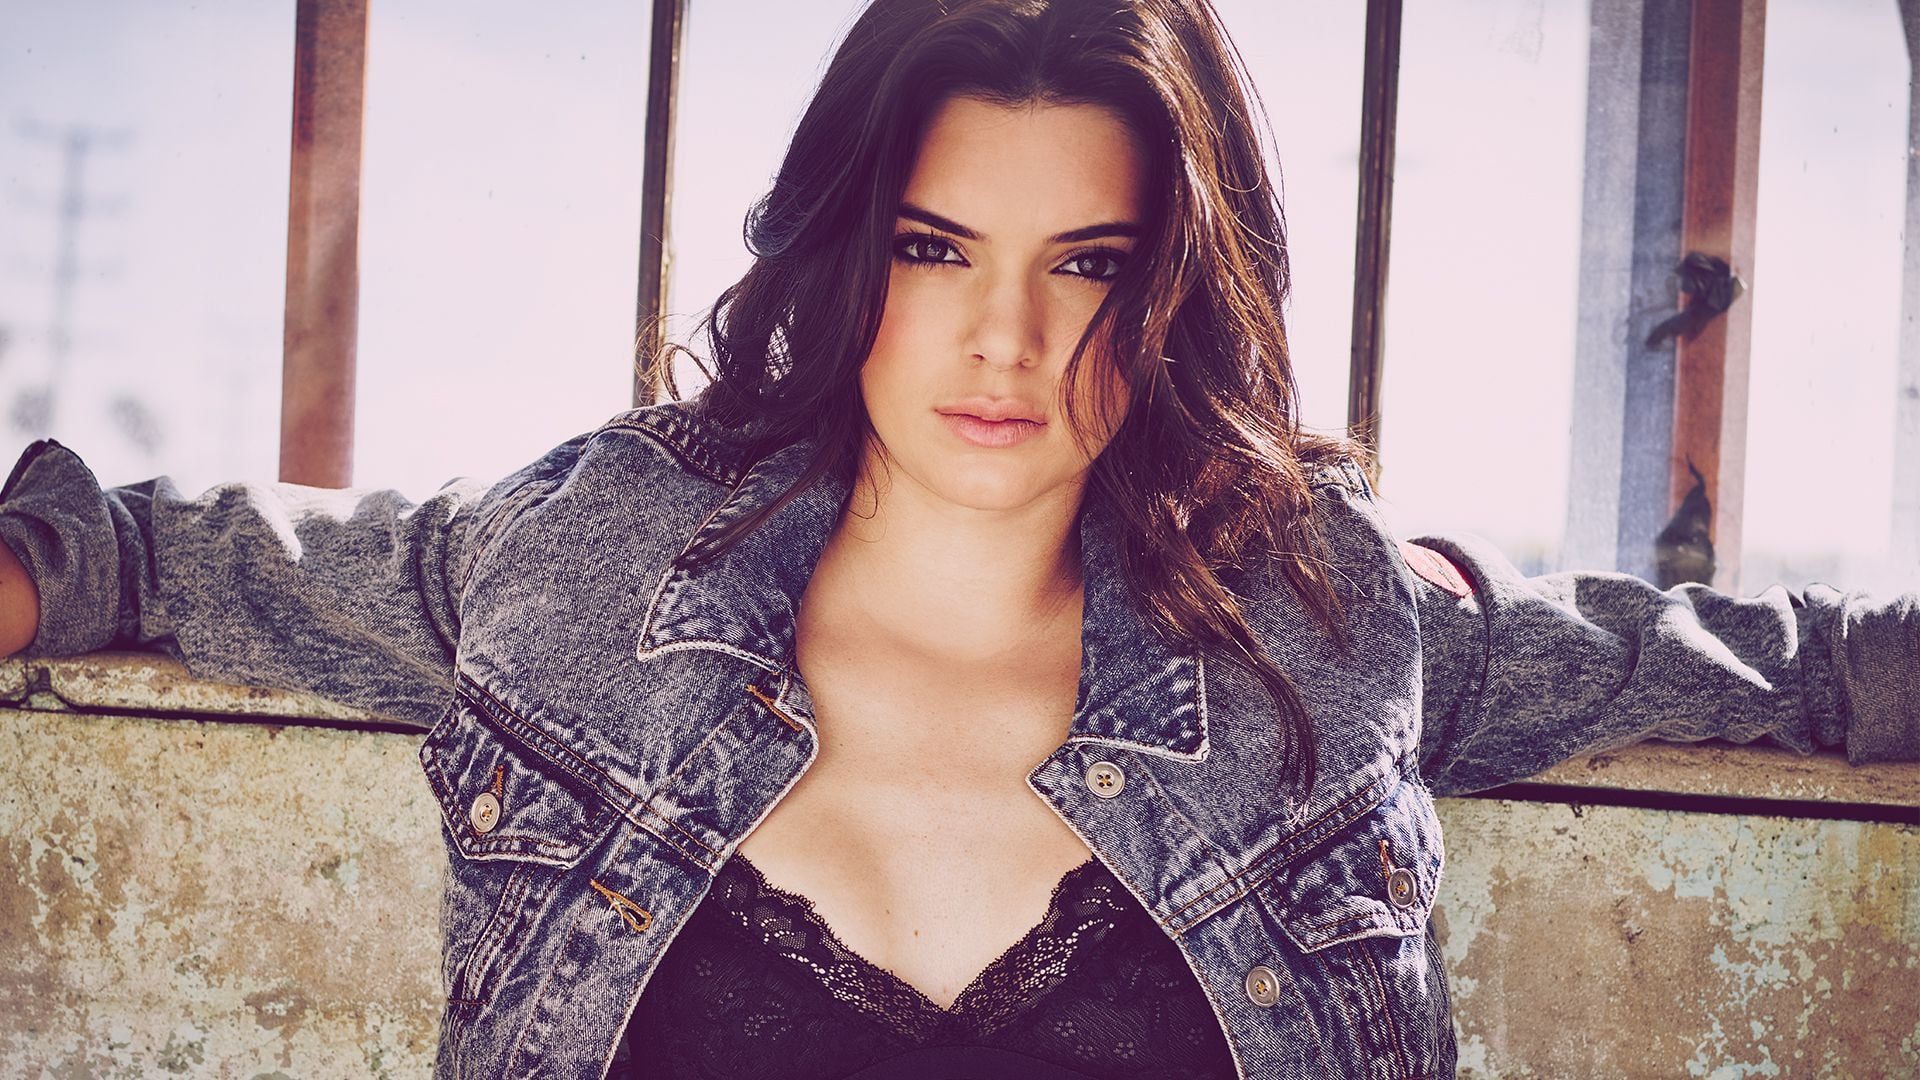 kendall jenner hot hd wallpaper 2567